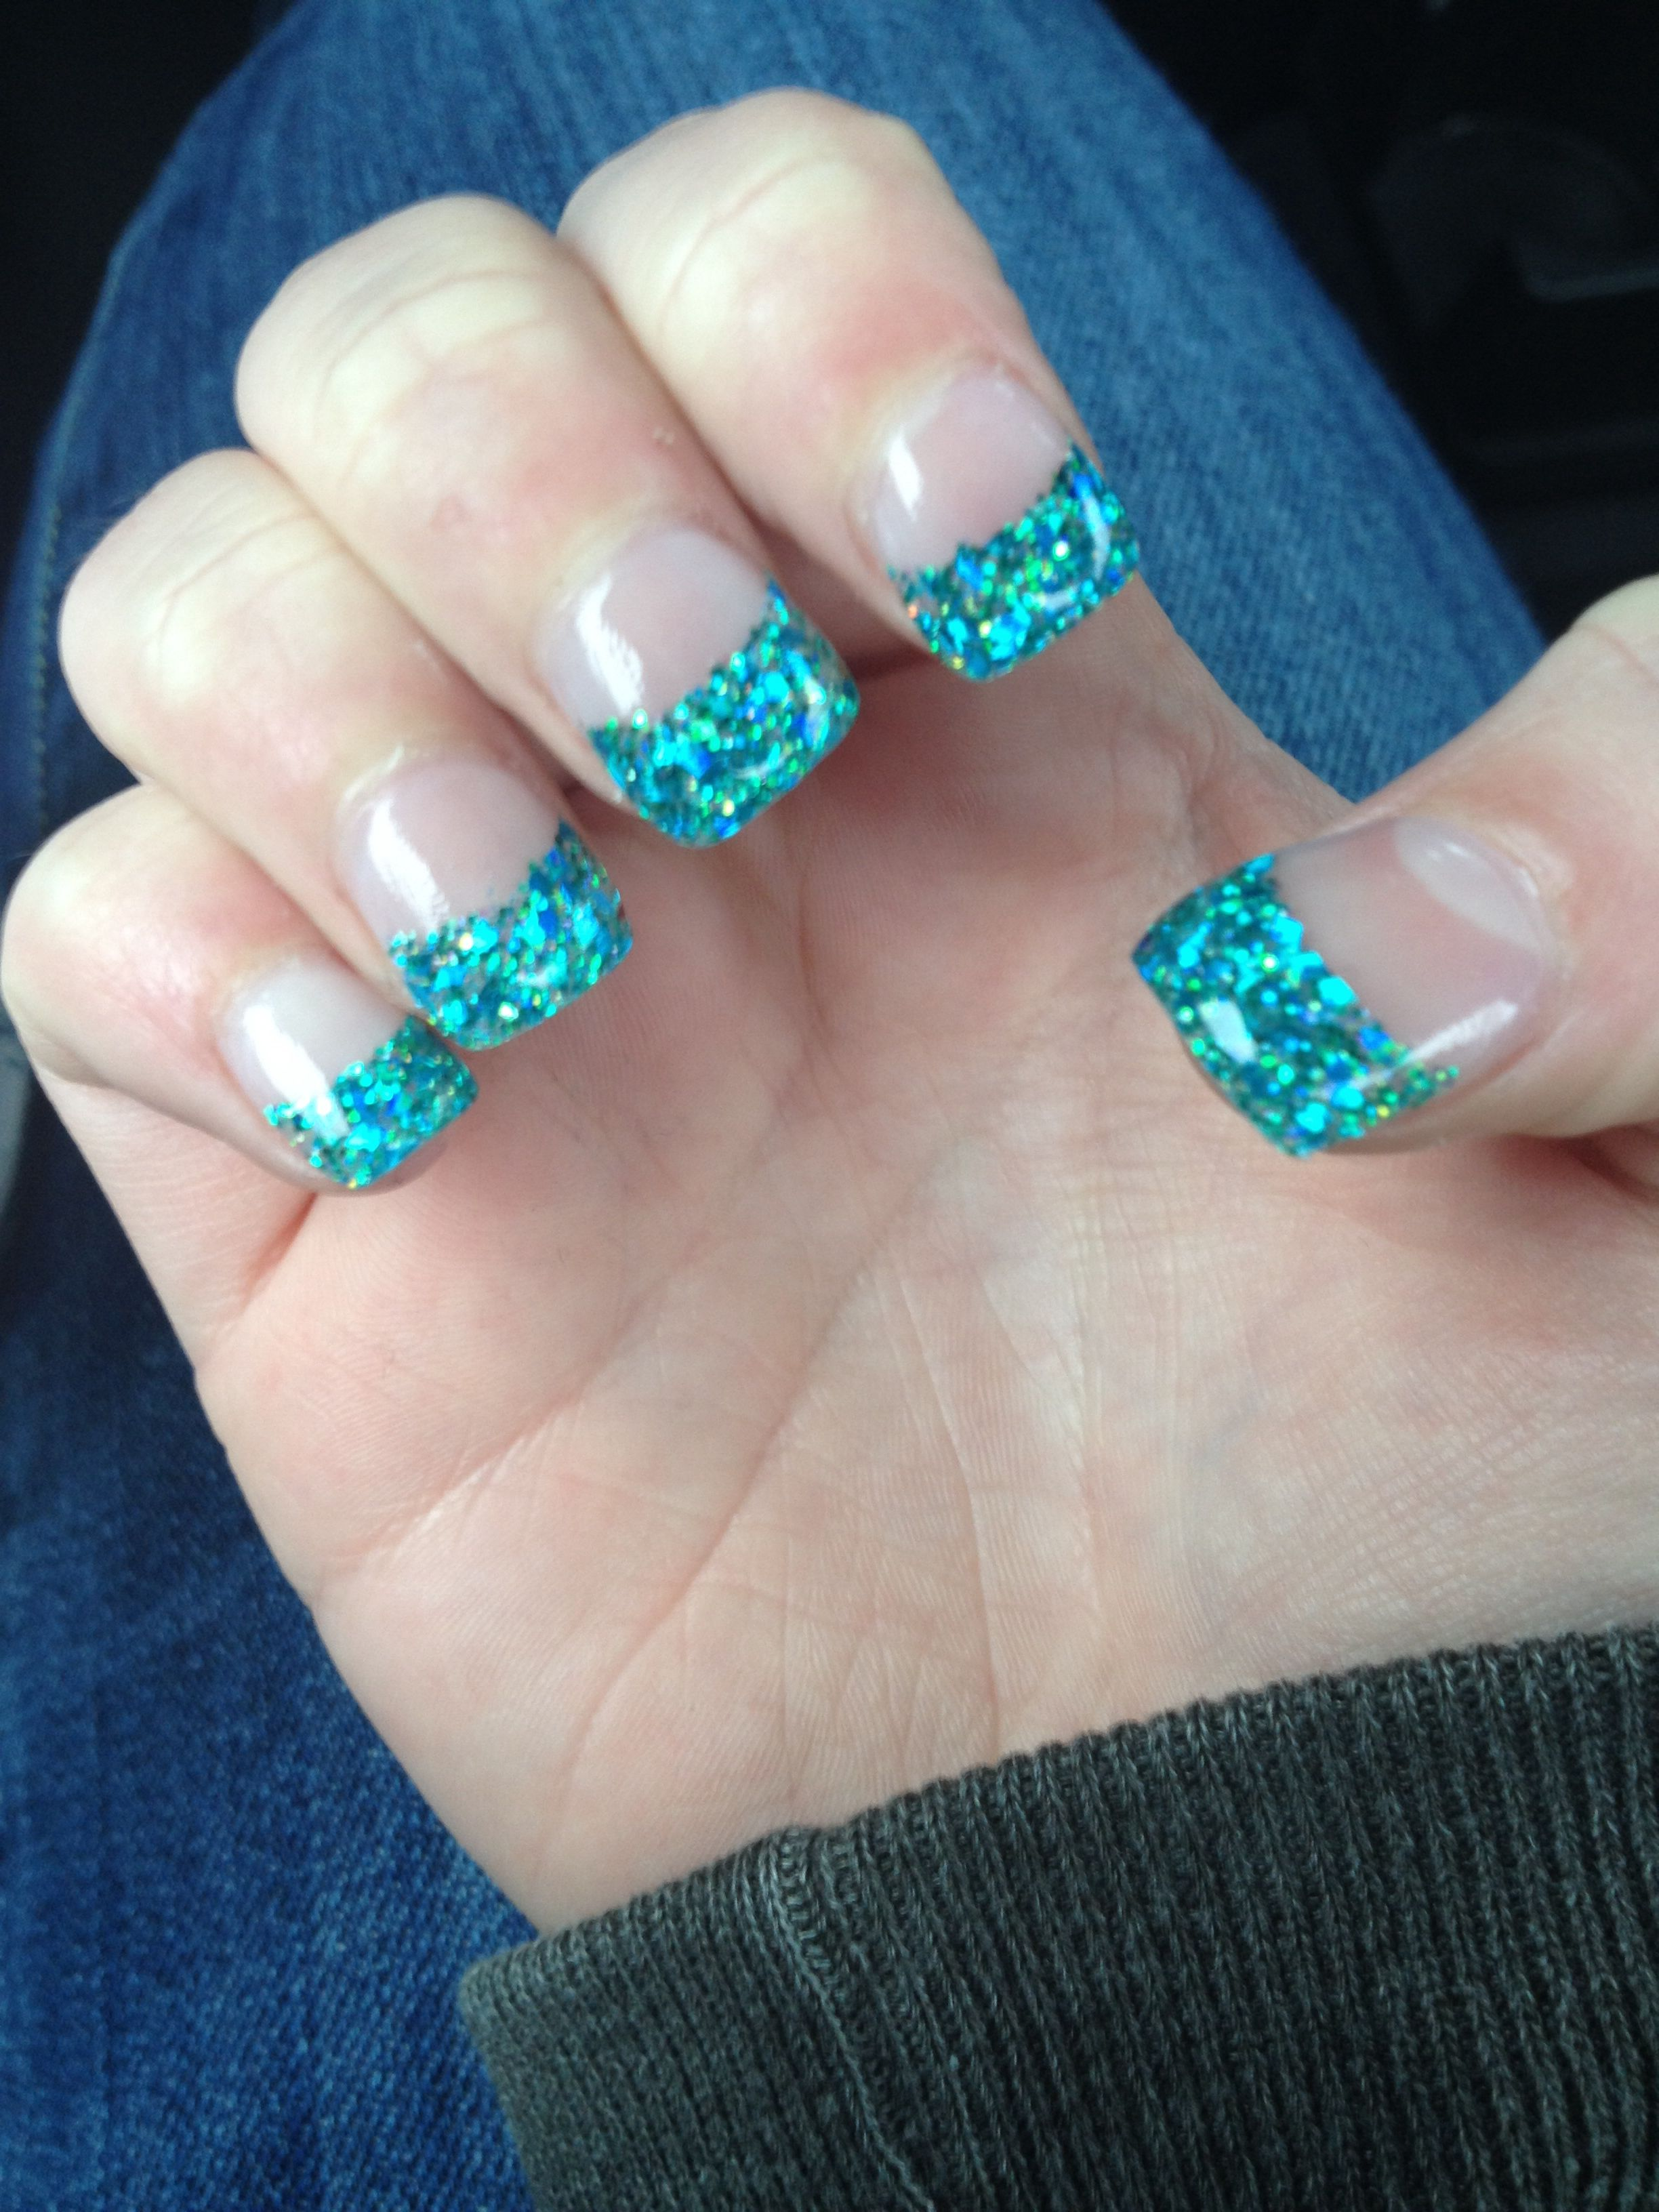 Pin By Tayler Wisor On Prom Prom Nails Blue Acrylic Nails French Tip Nails